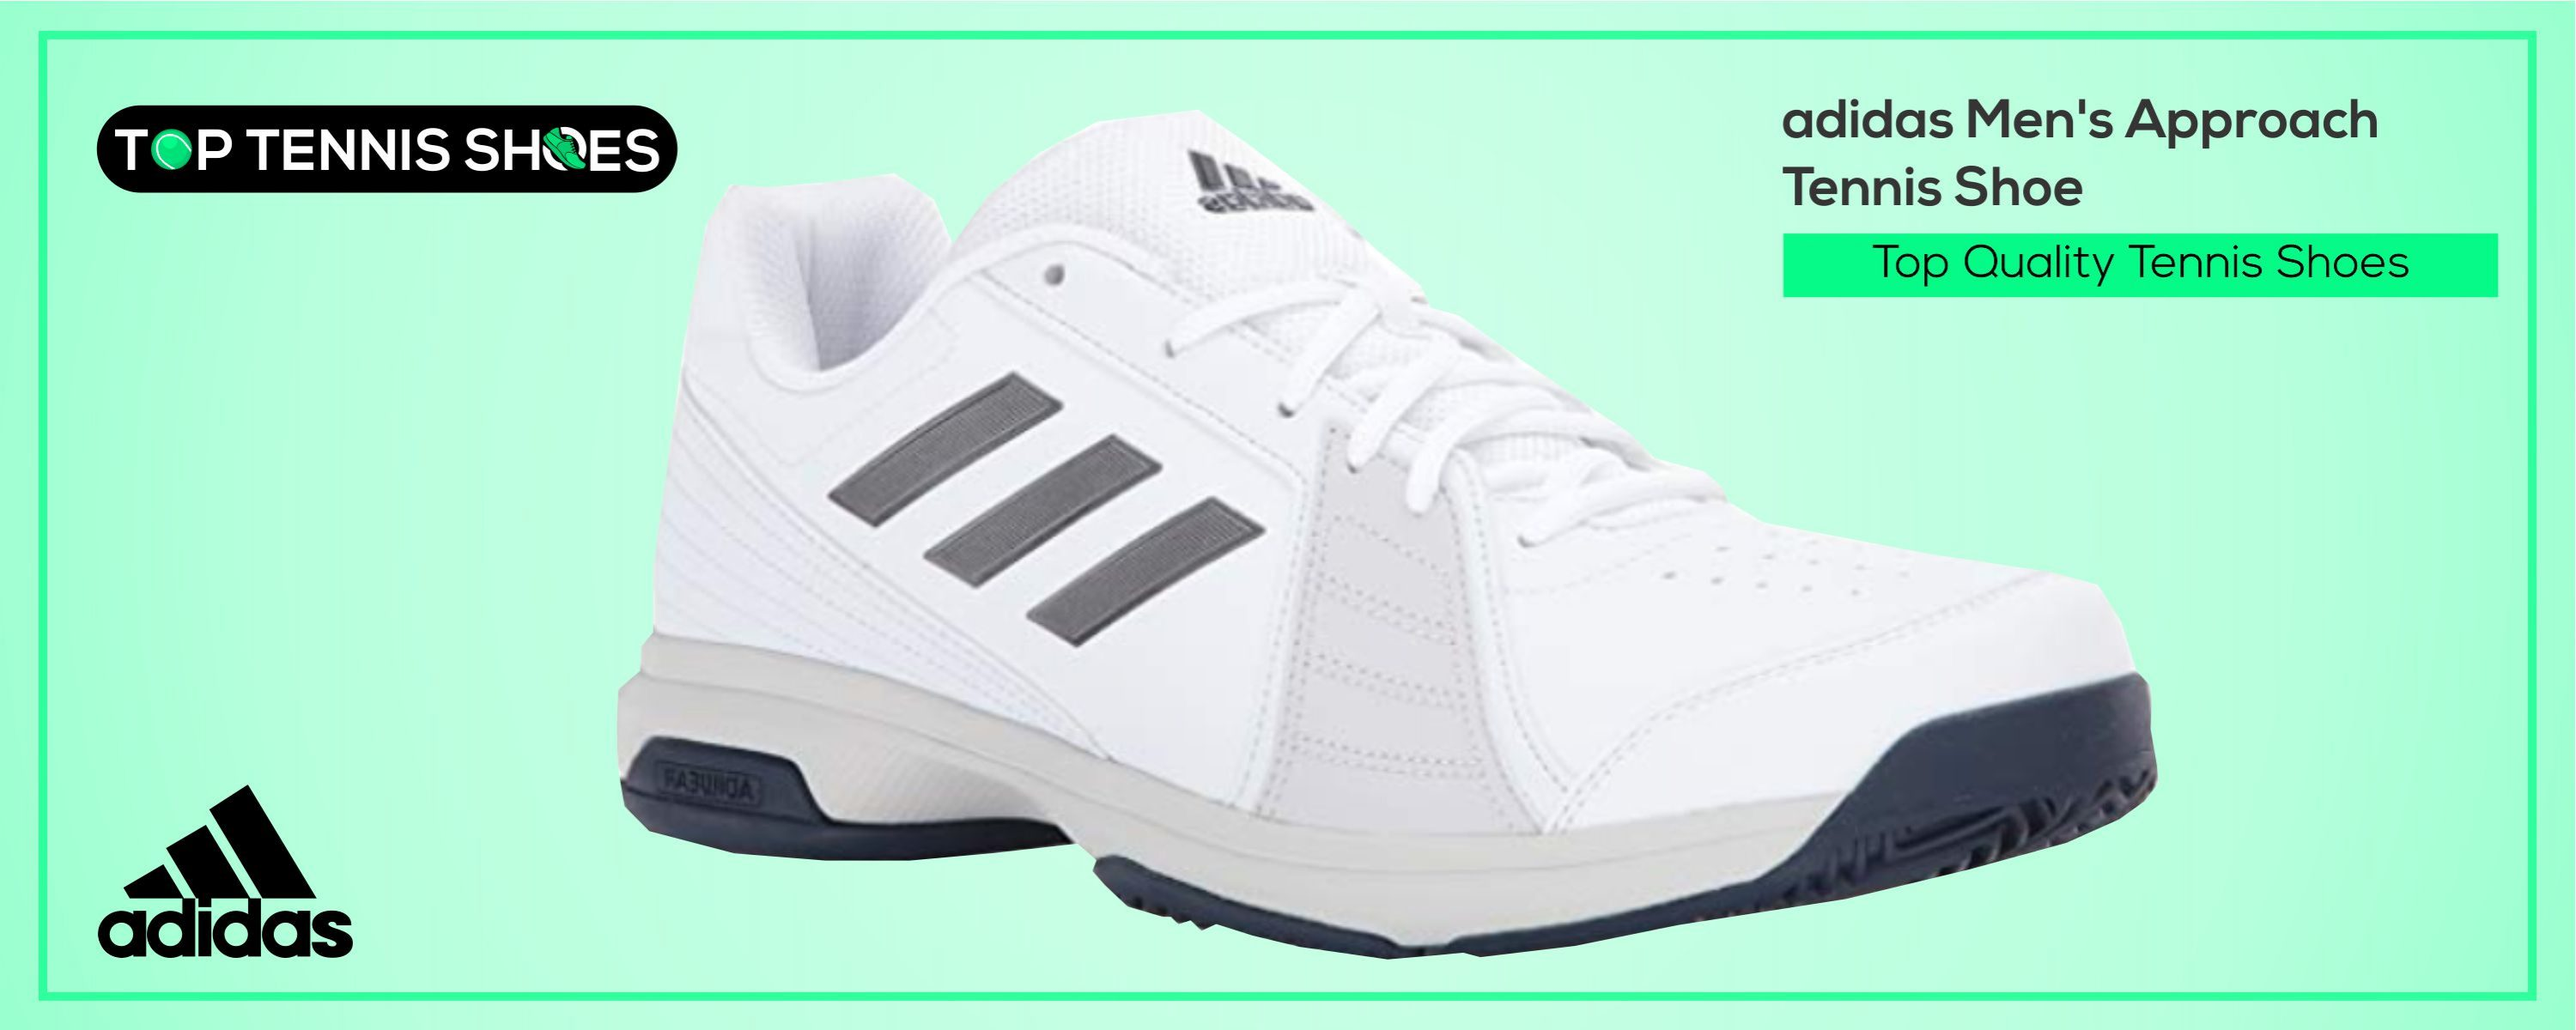 Top Quality Tennis Shoes